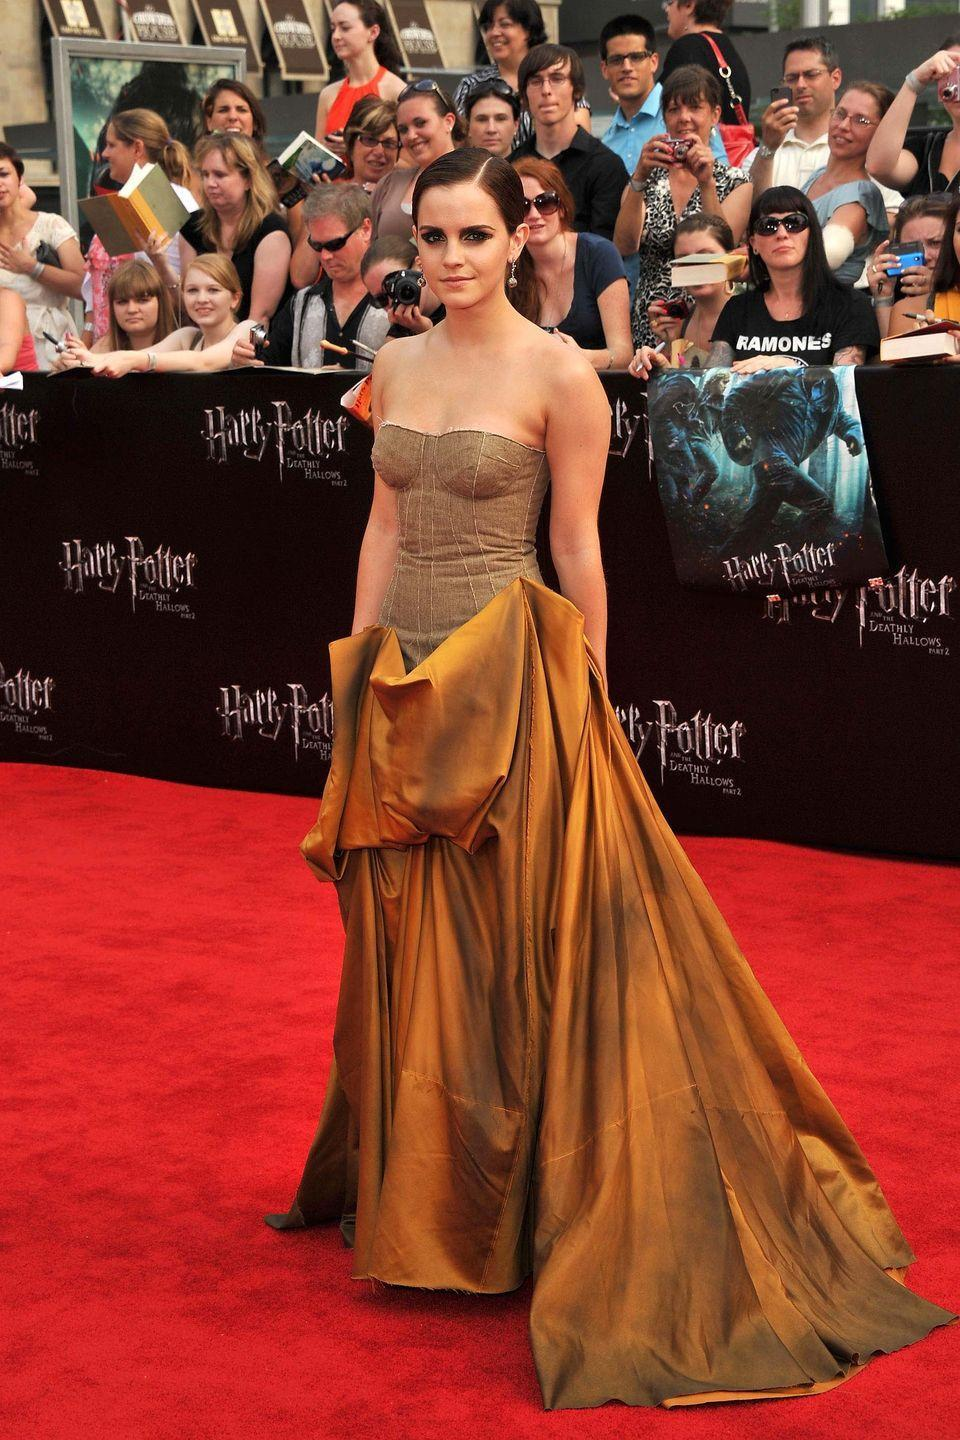 <p>Who knows? Maybe it was this golden gown that Emma Watson wore to the 2011 premiere of <em>Harry Potter and the Deathly Hallows: Part 2</em> that convinced Disney to cast her as Belle in the live action version of <em>Beauty and the Beast</em>, which came out in 2017.</p>